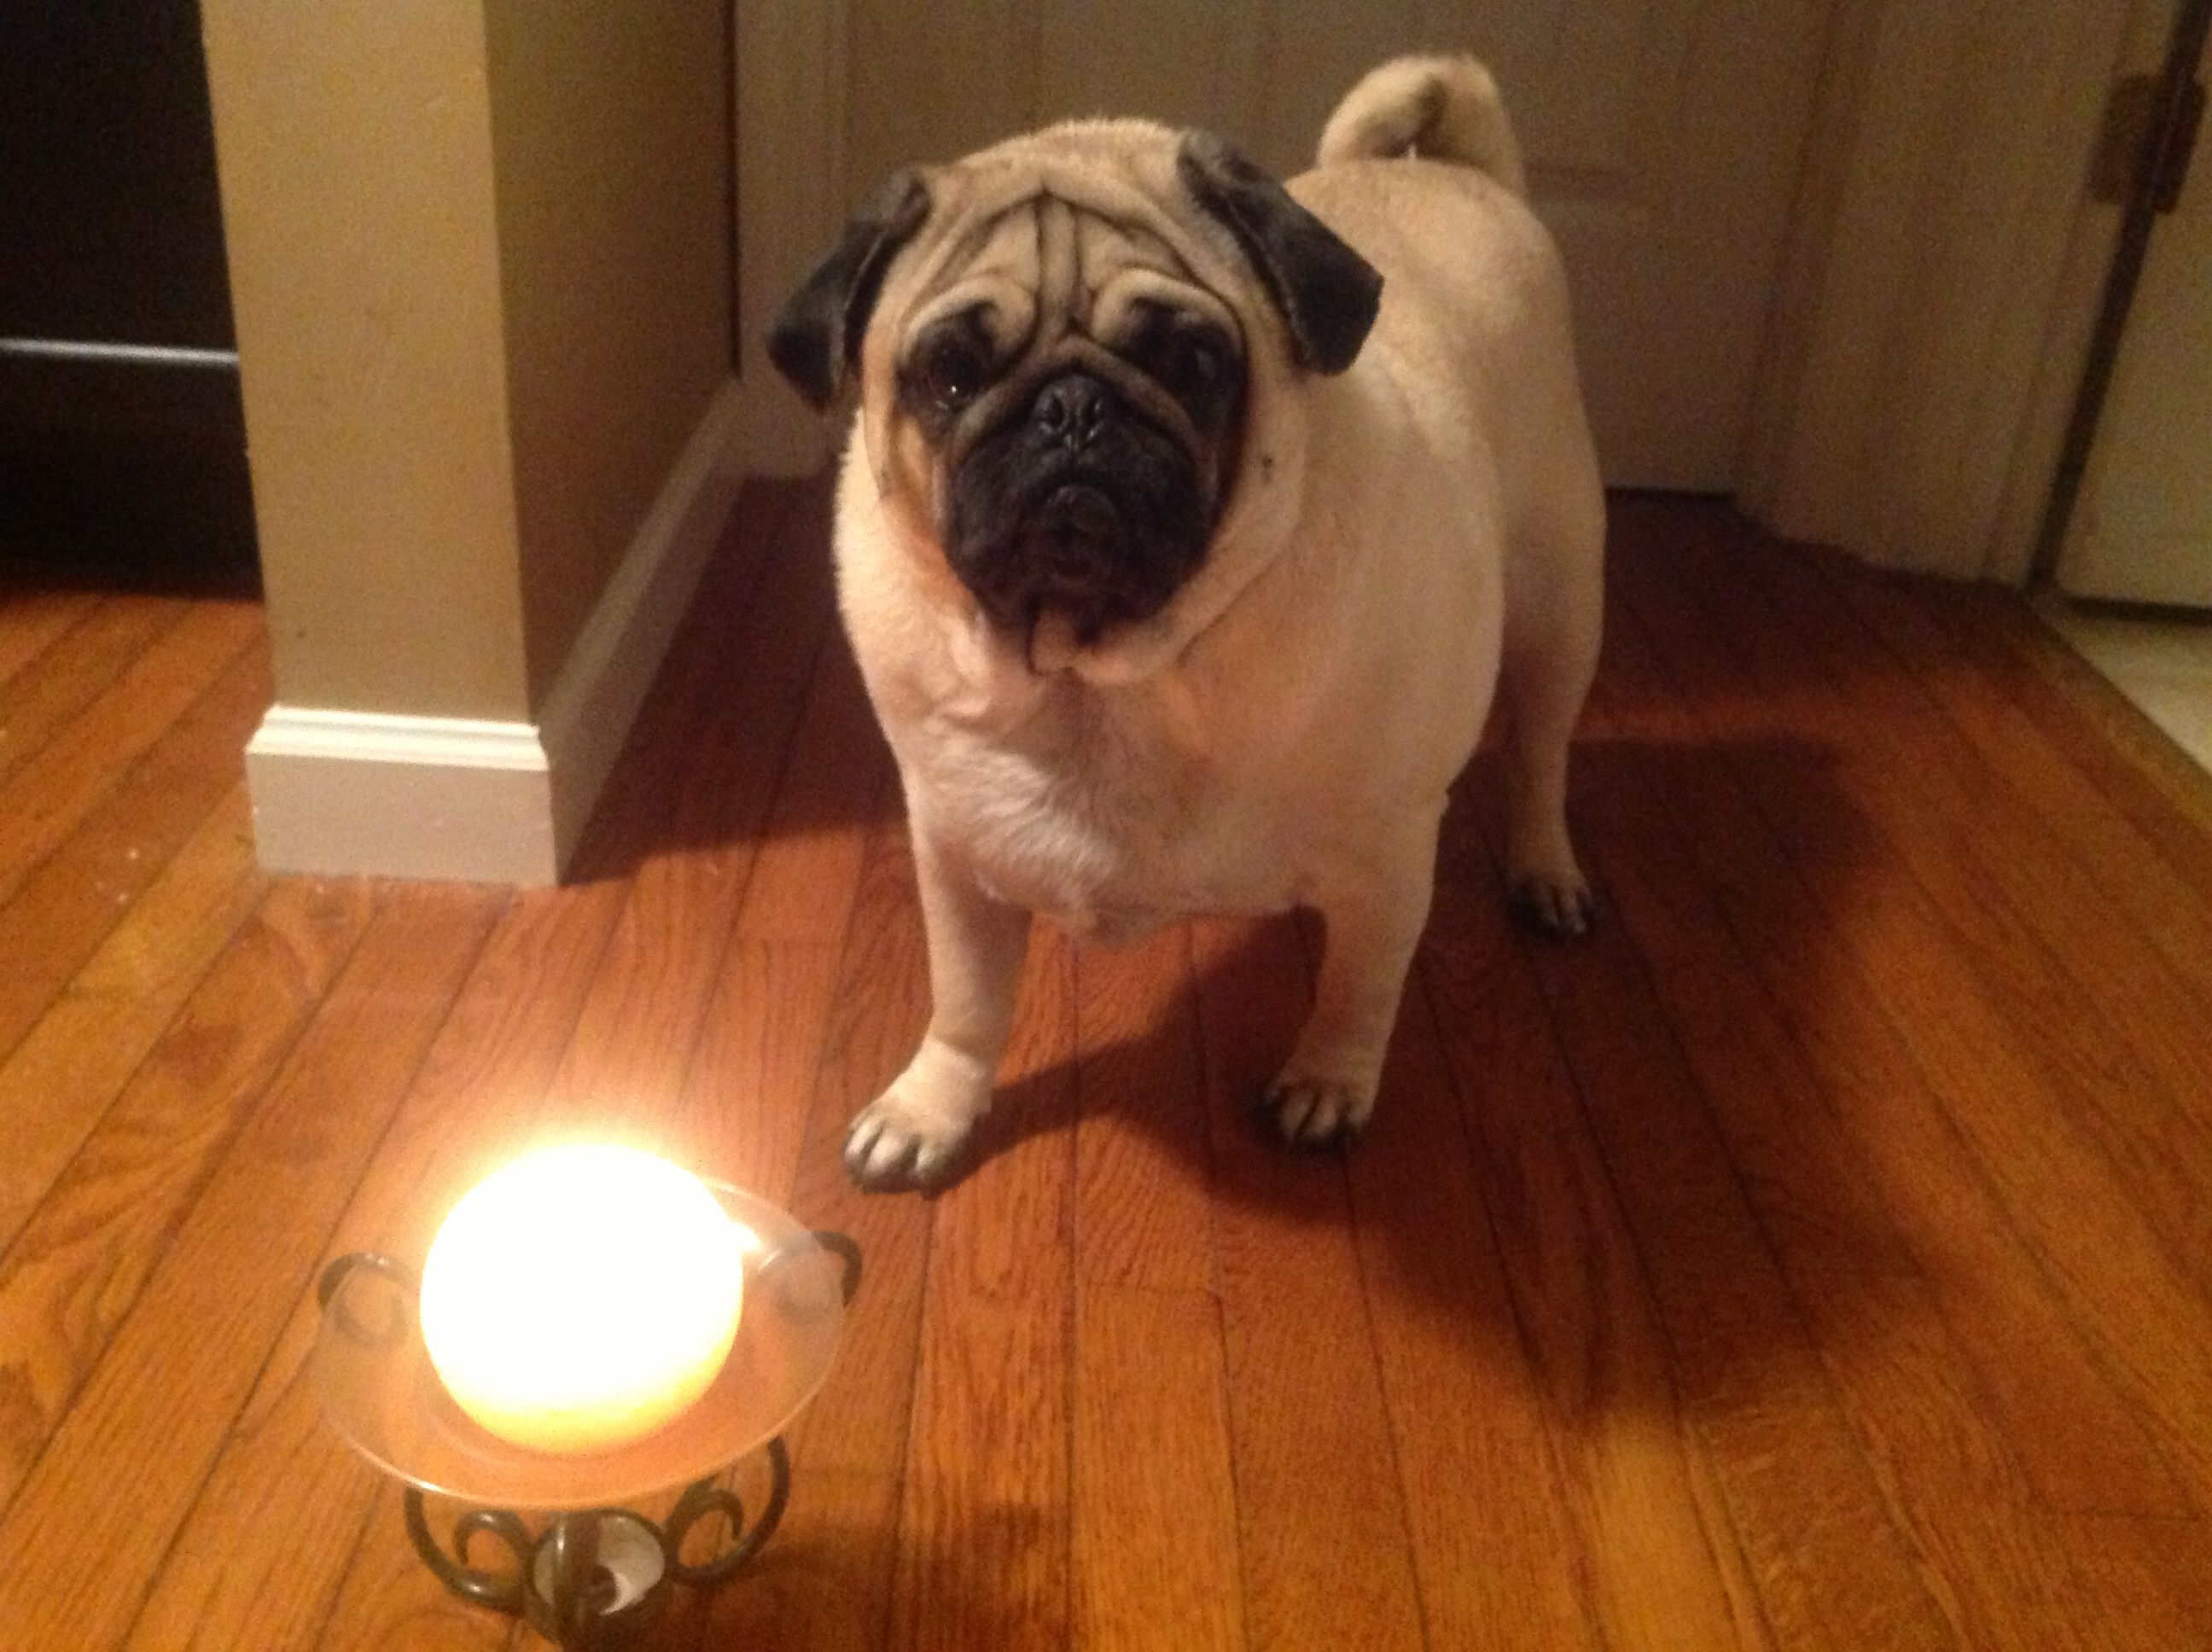 A candle is lit for zola in mo rip sweet pea pug hugs and love